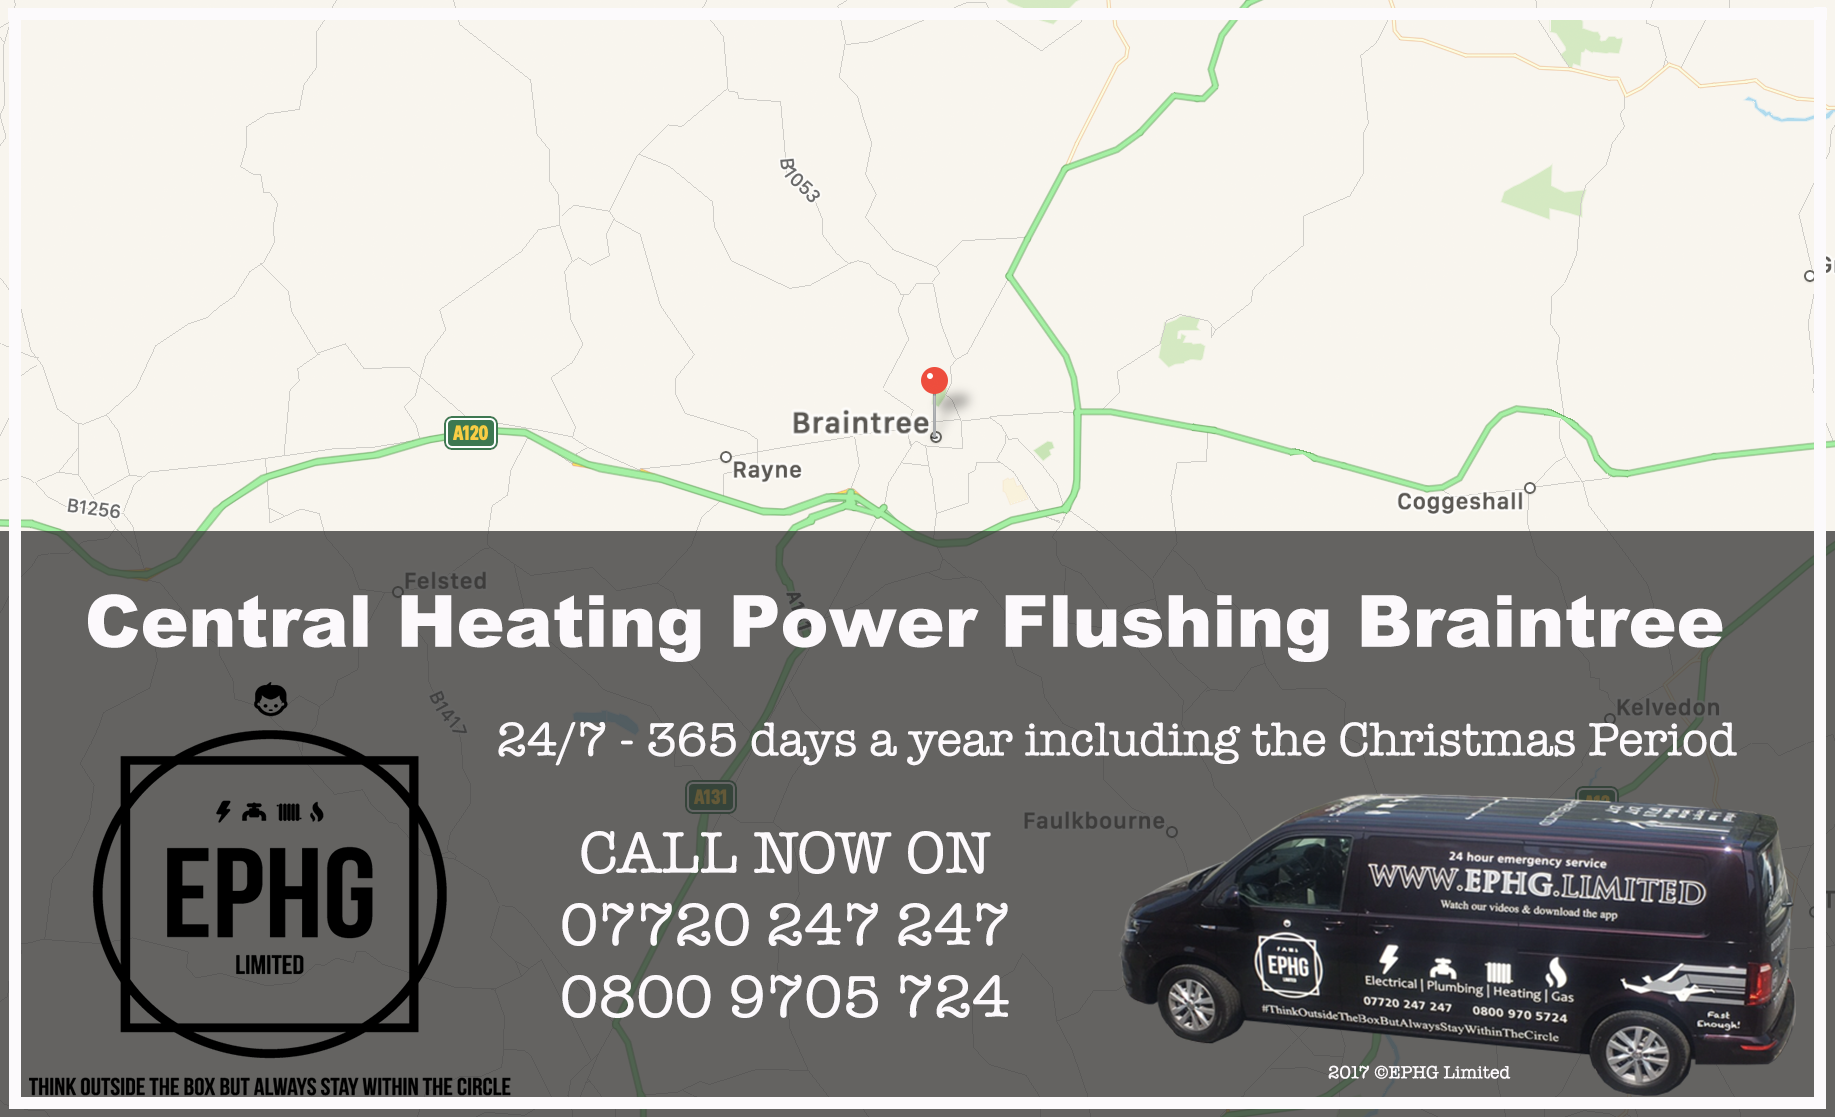 Central Heating Power Flush Braintree